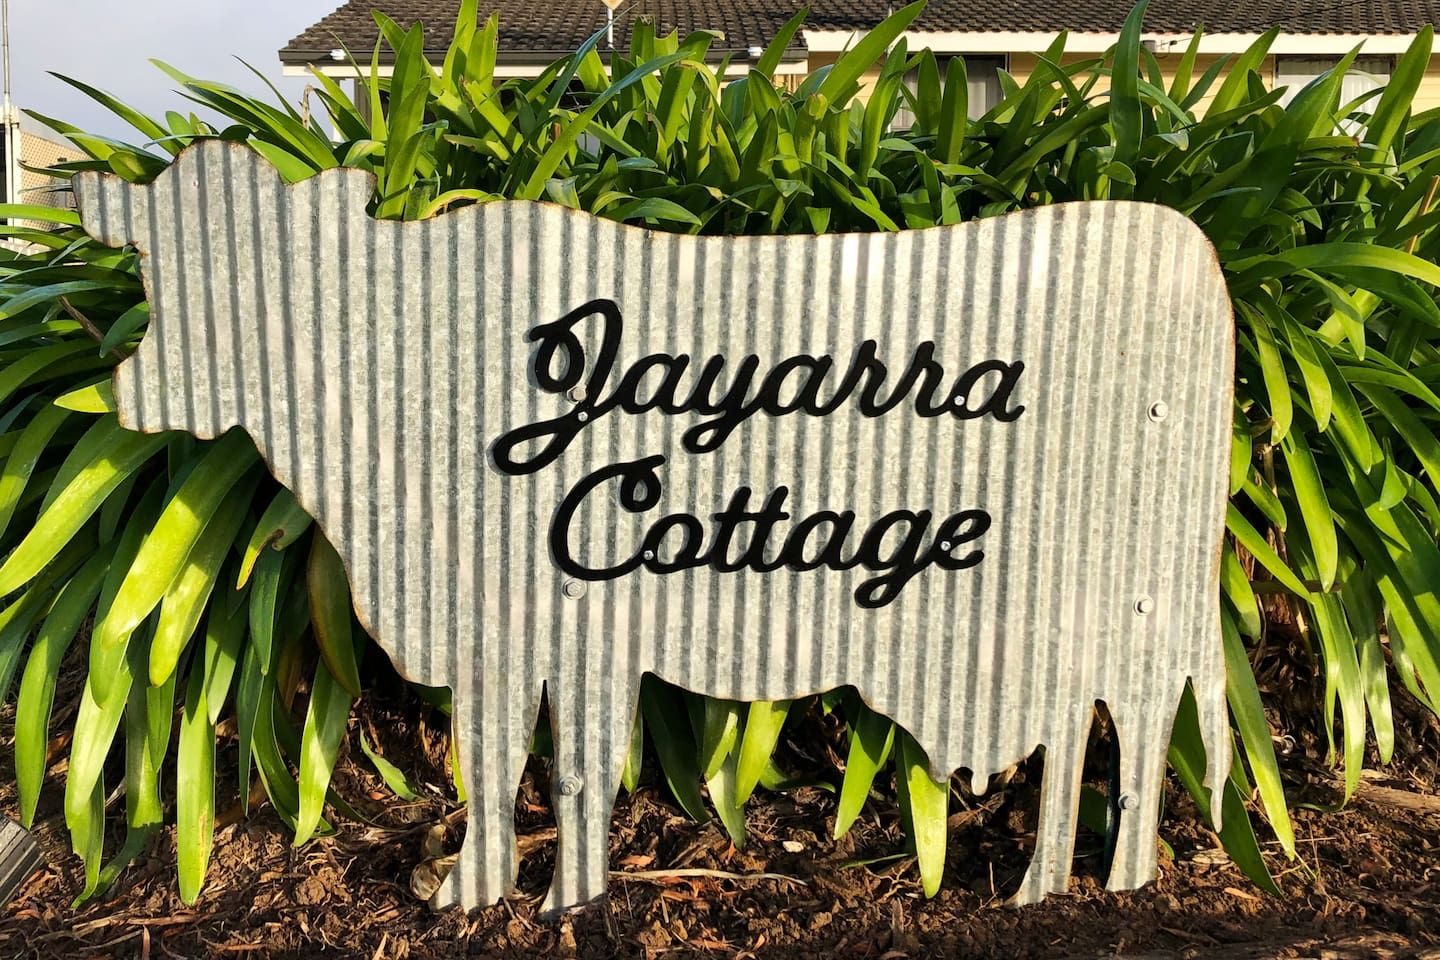 When arriving look out for the Jayarra Cottage cow sign at the front of the property.